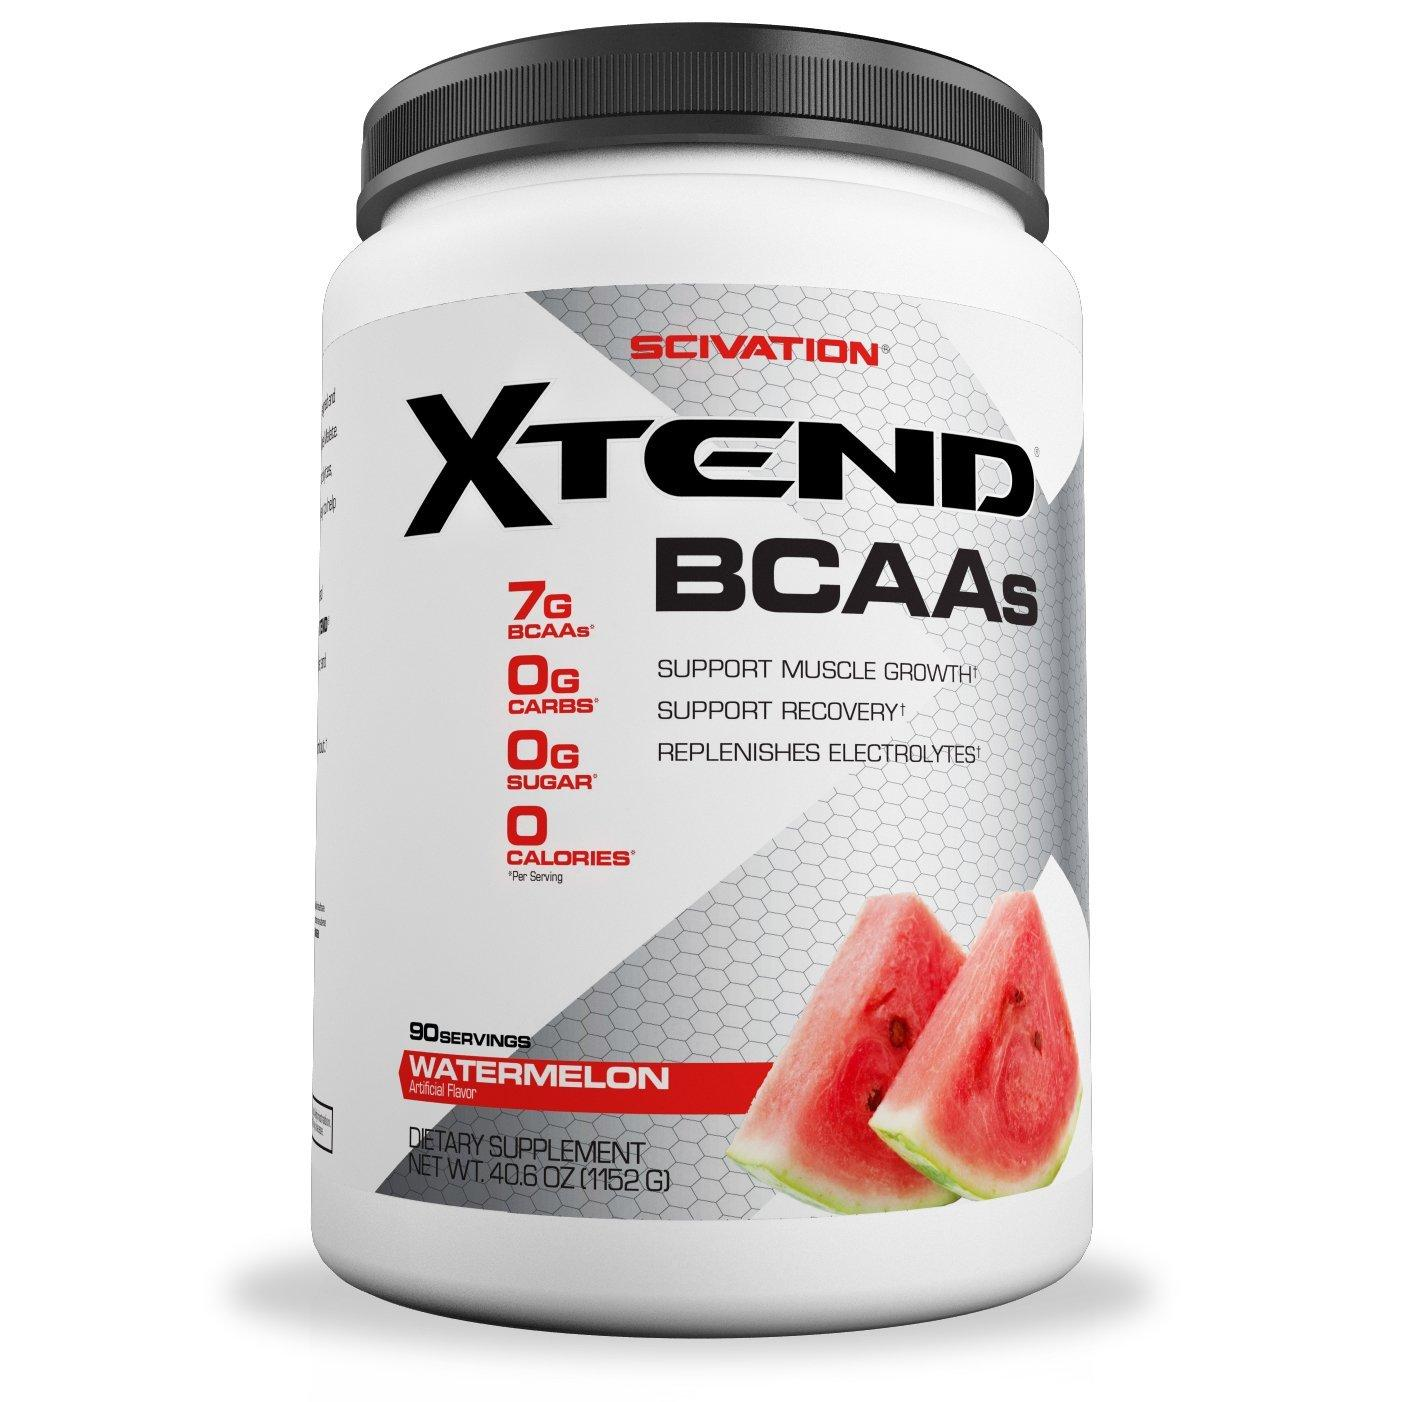 Scivation Xtend BCAAs for Muscle Growth and Strength Watermelon 90 Servings With Free Gift